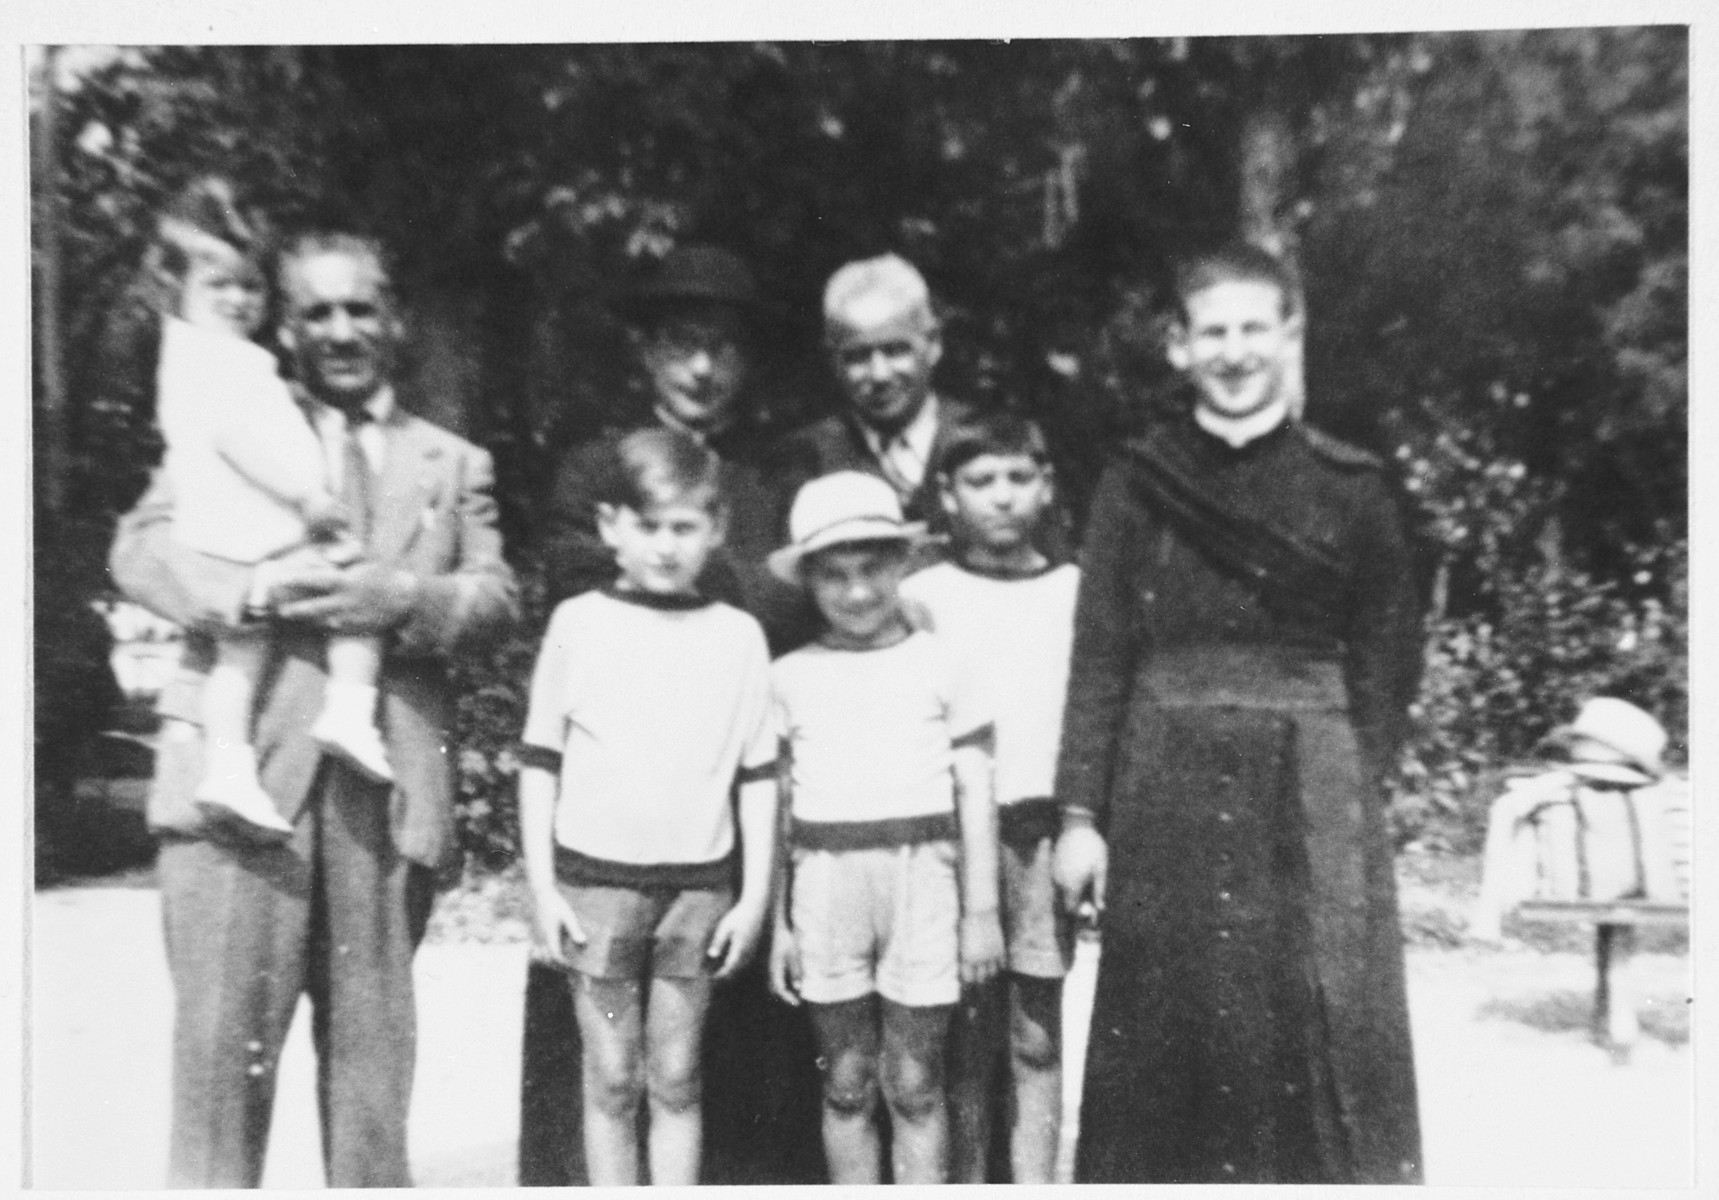 A Jewish family poses with a priest from the parish that hid them a few years later.  From left to right are Nathan Orvieto in the arms of his father, Enrico Orvieto (donor's uncle), Emanuele Pacifici, Guiliano Orvieto, Gualtiero Orvieto, and the priest whose name is unknown.  Behind them is Don Gaetano Tantalo and Mario Pacifici (the donor's paternal grandfather).  Don Gaetano Tantalo hid all nine members of the Ovieto family for approximately nine months.  He passed away a few months after the end of the war but in 1978 was recognized as Righteous Among the Nations.